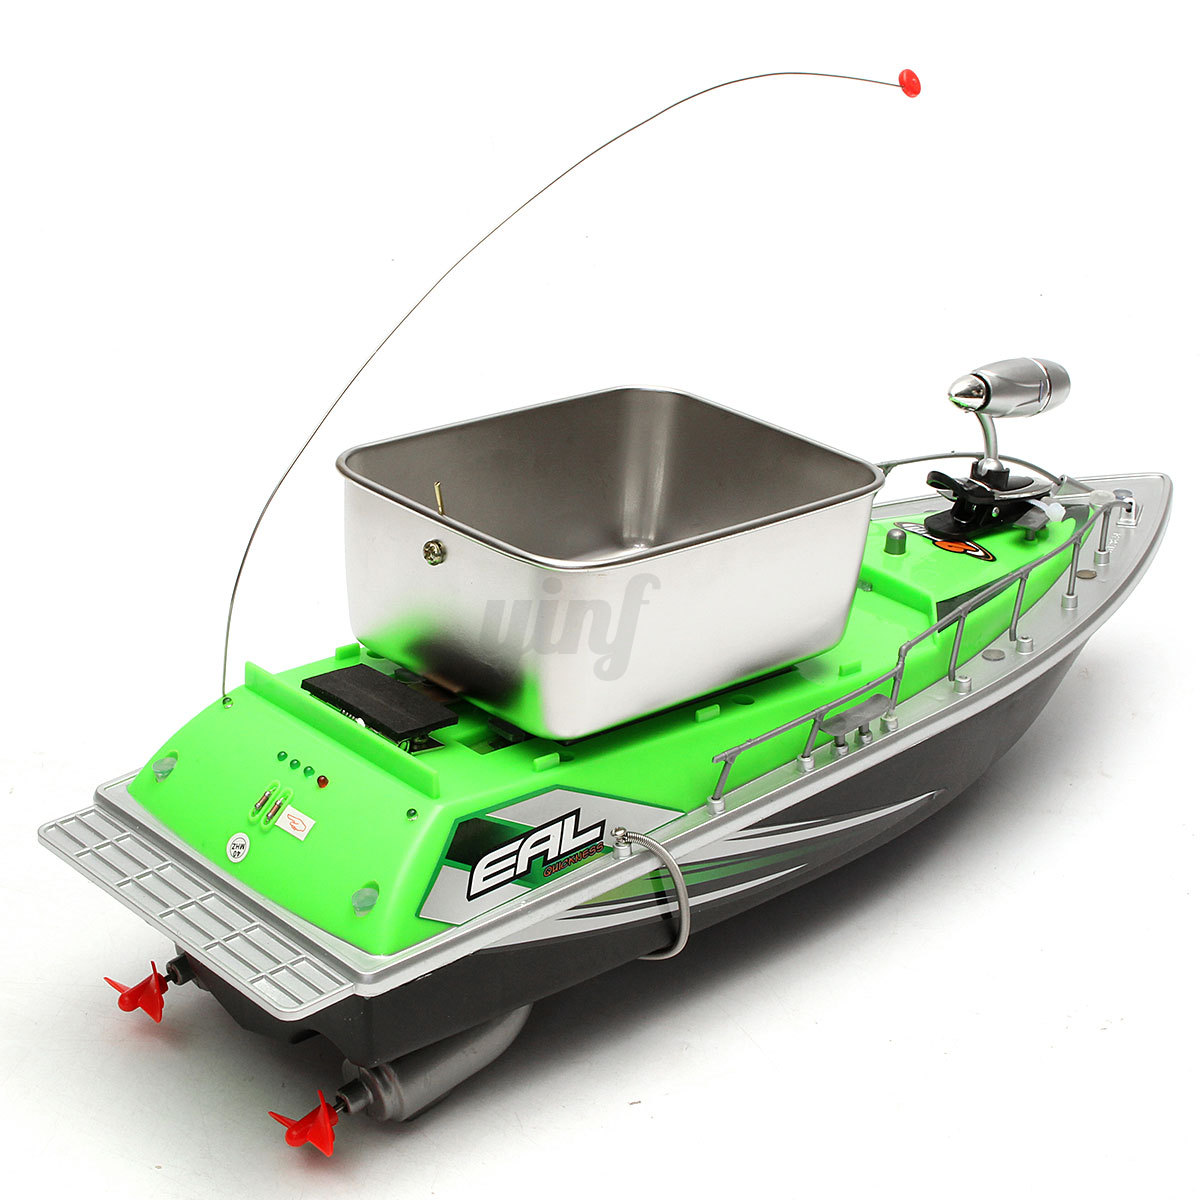 Remote control fishing bait boat lure 300 metres wireless for Rc boat fishing